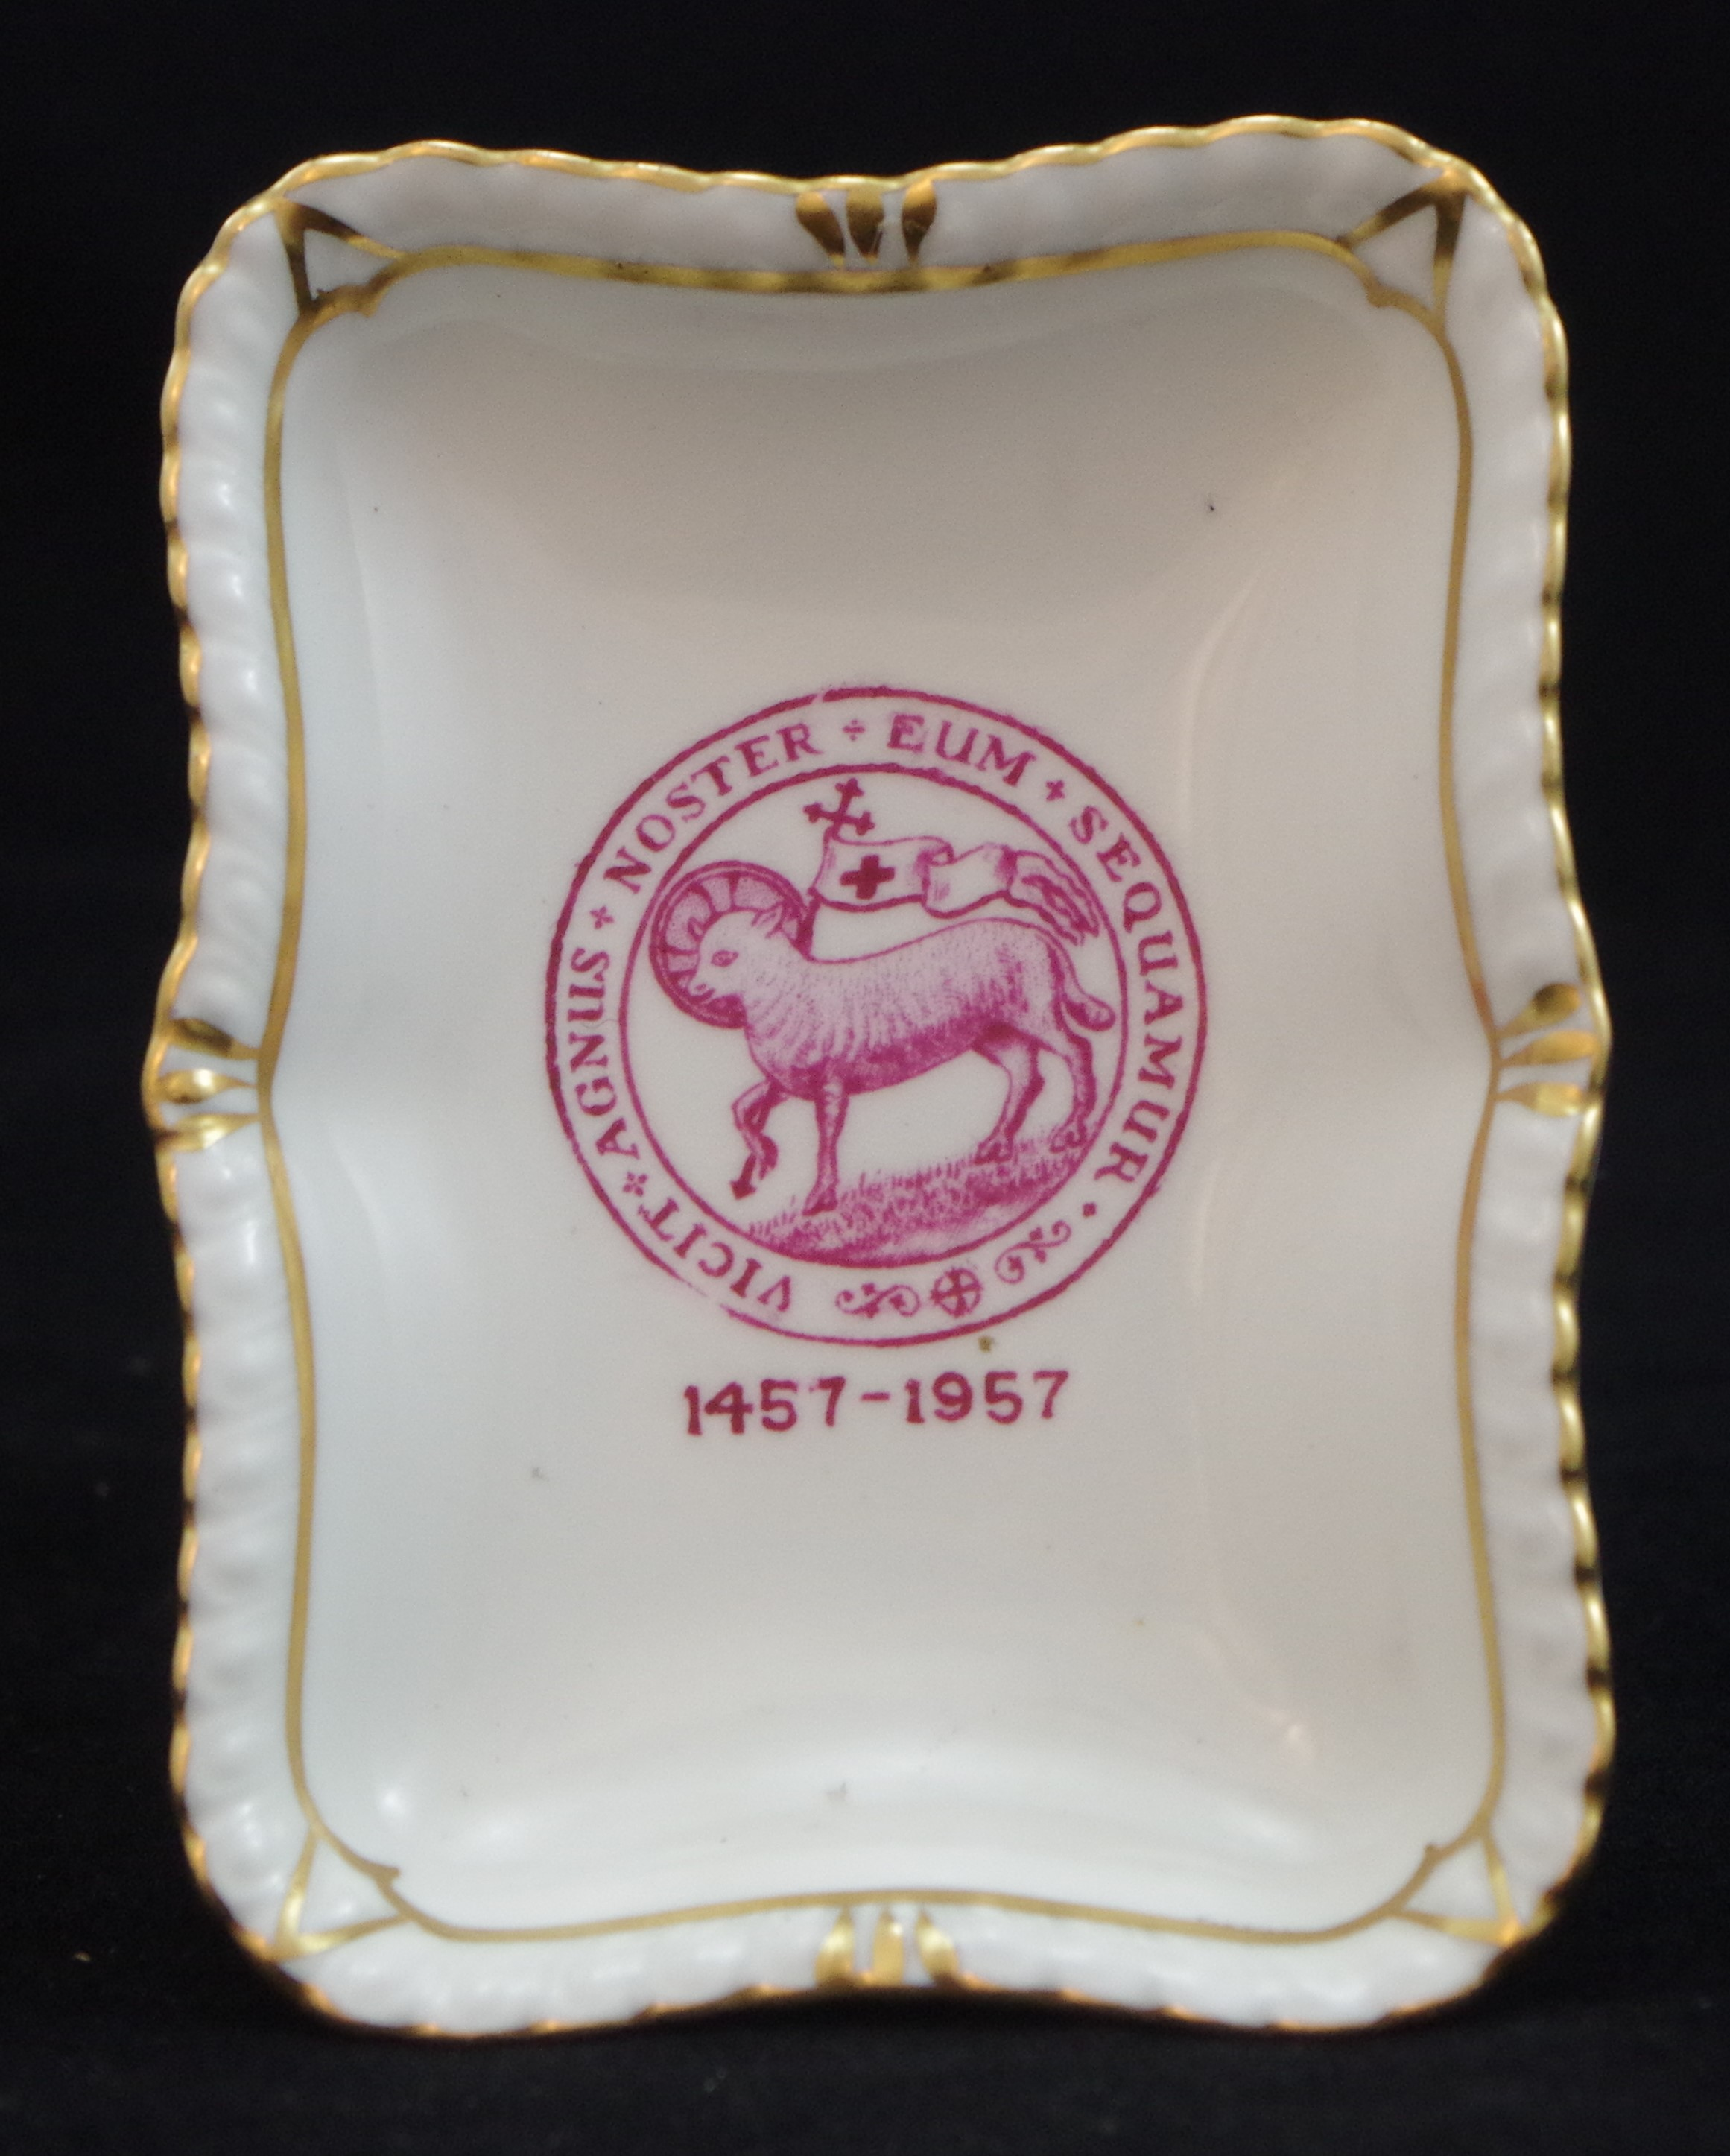 royal-crown-derby-oblong-gadroon-tray-moravian-church-500-year-anniversary